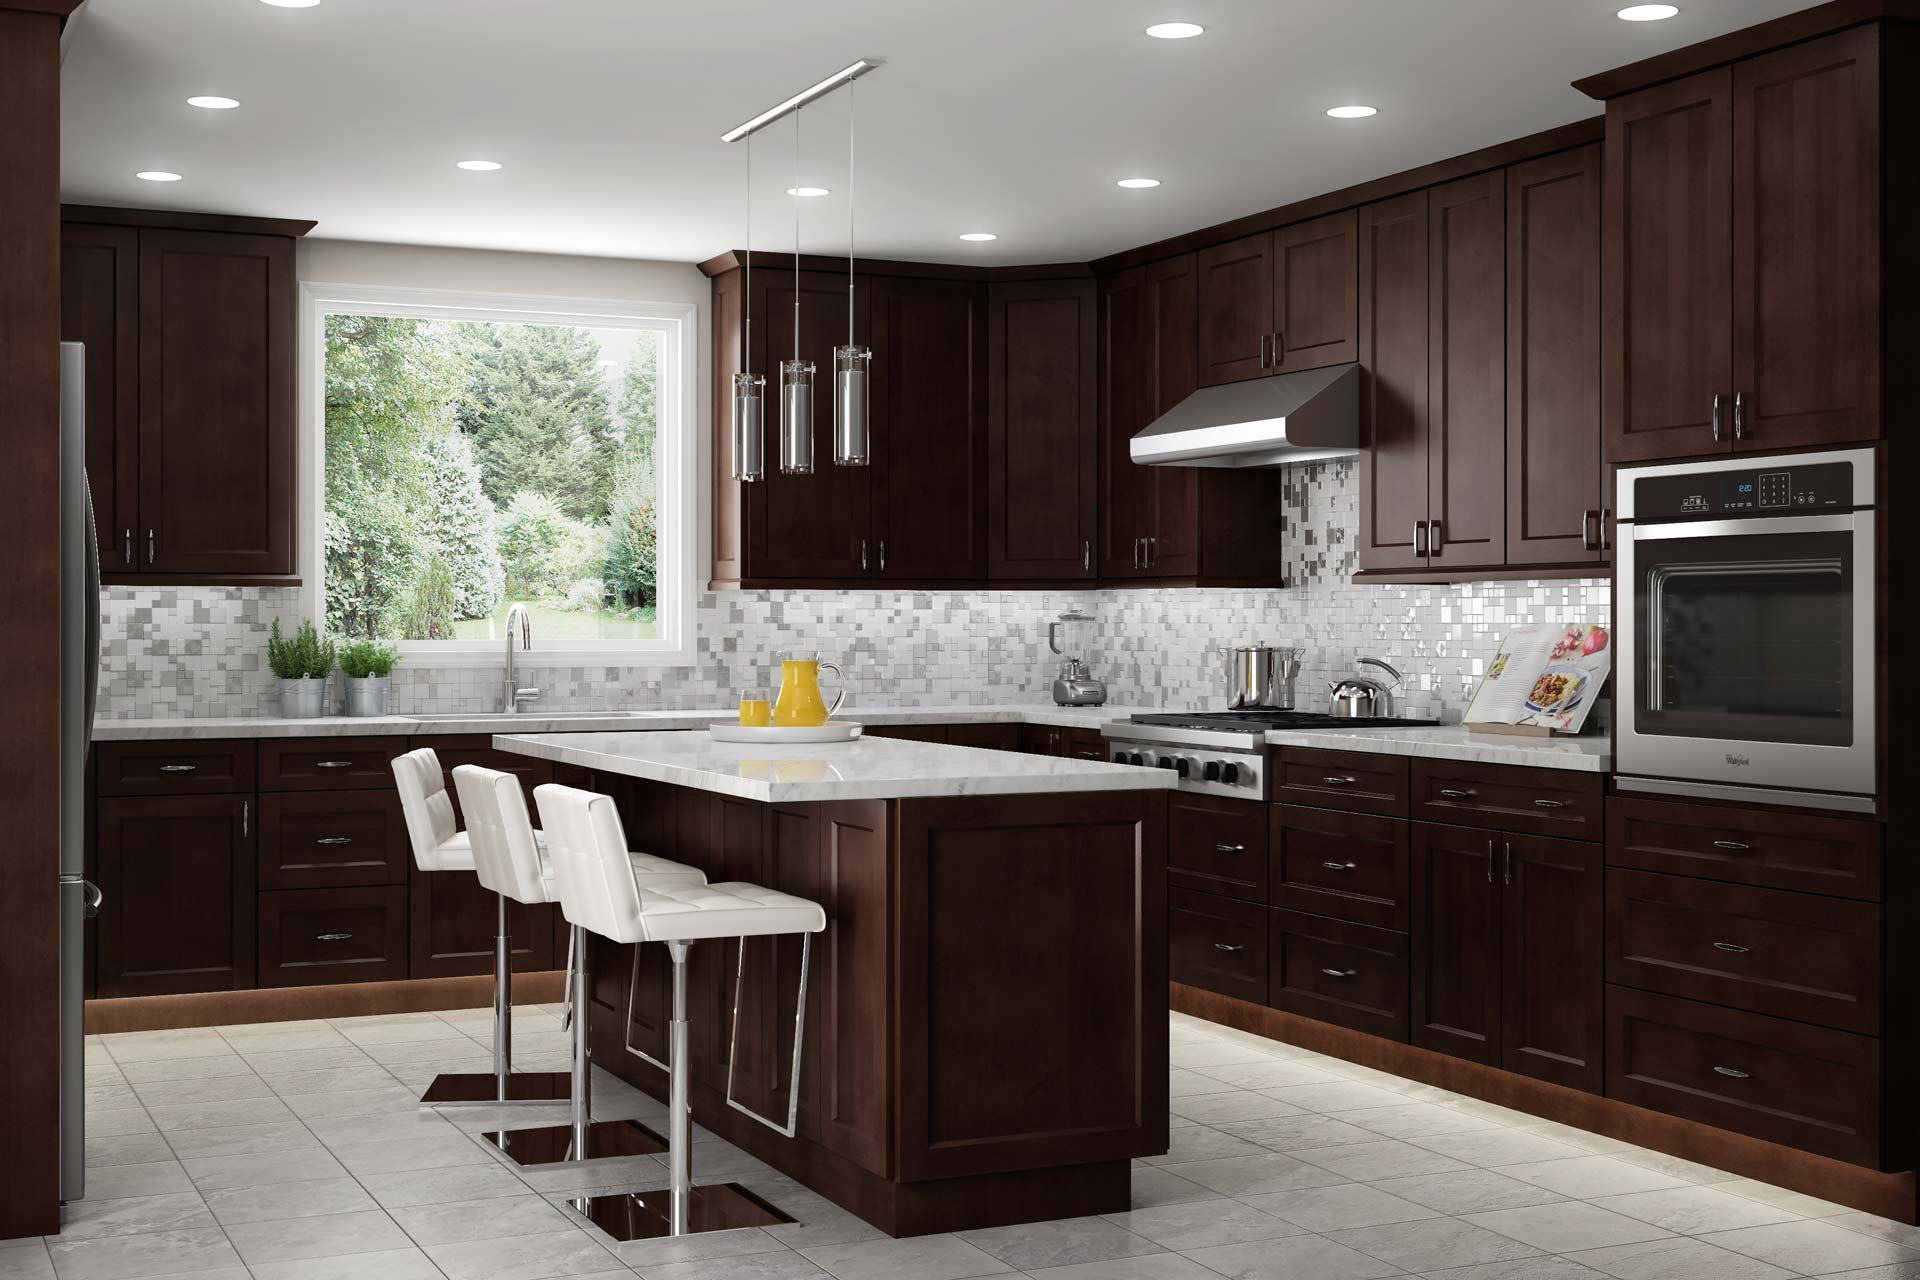 kitchen designer qualifications bliss cabinets reviews bliss cabinets reviewed amp by you 666